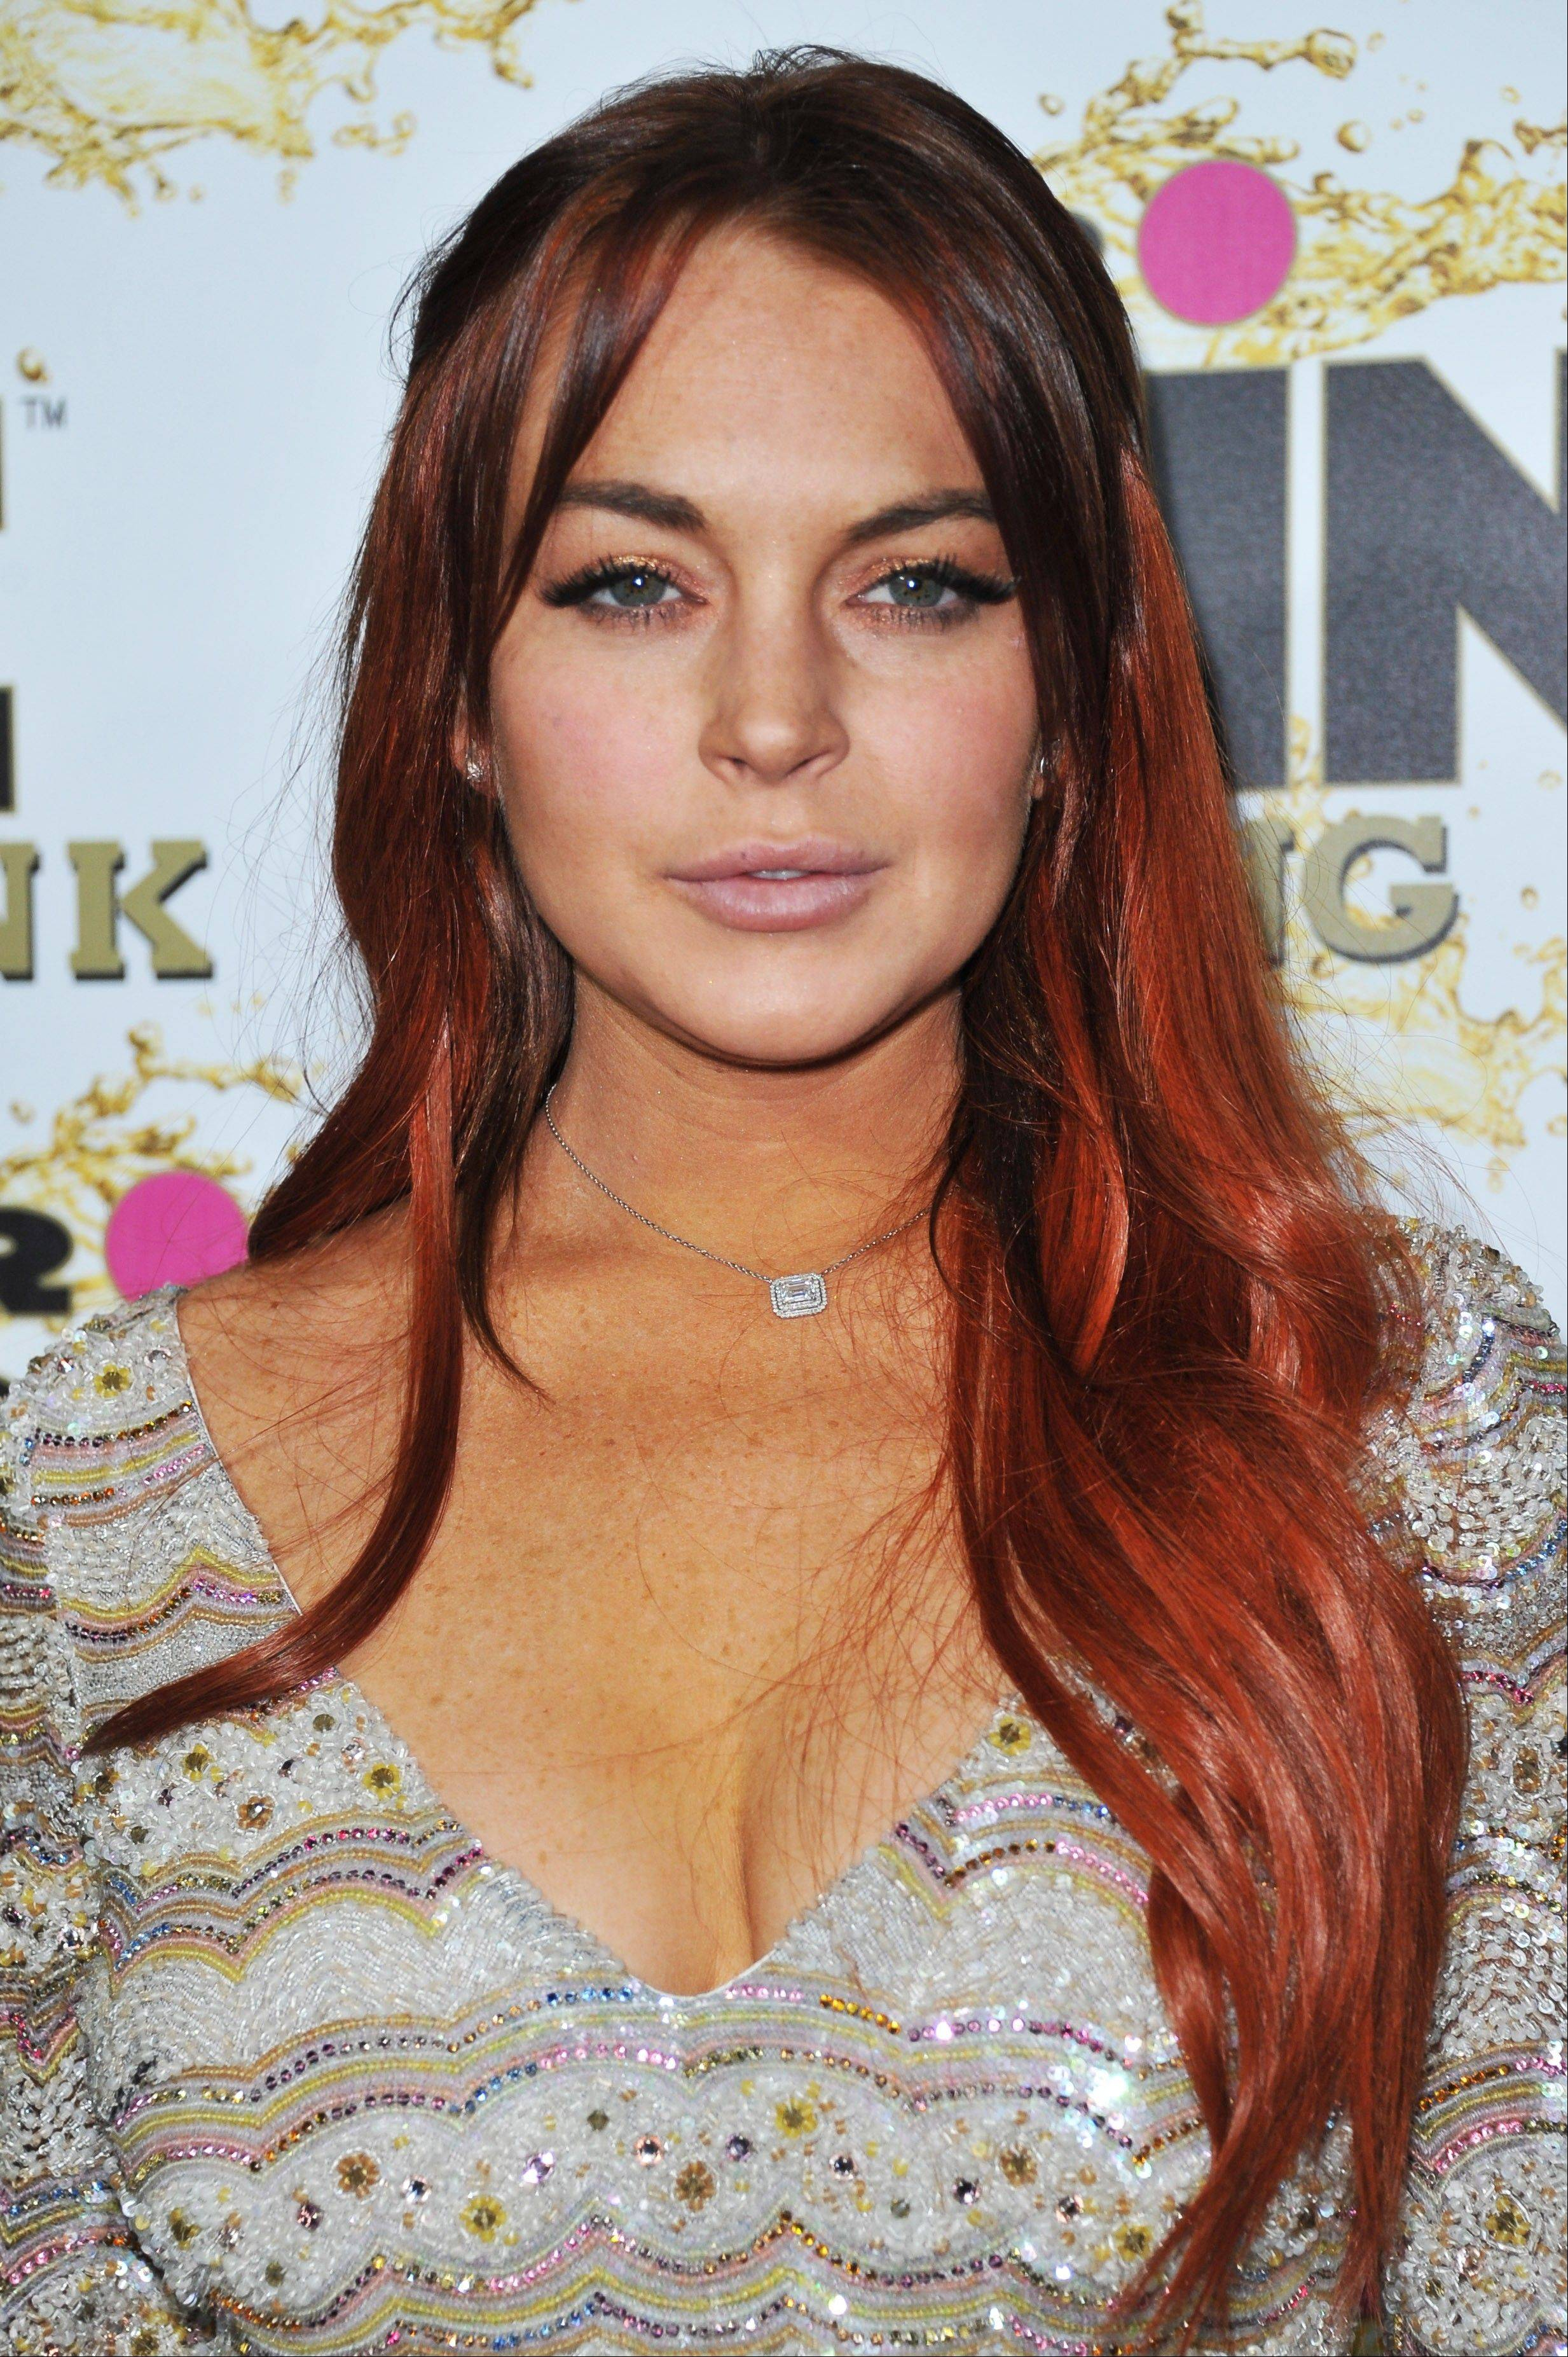 Lindsay Lohan is due to be arraigned on three misdemeanor charges after authorities say they determined the actress lied about being a passenger when her Porsche slammed into the back of a dump truck in June.